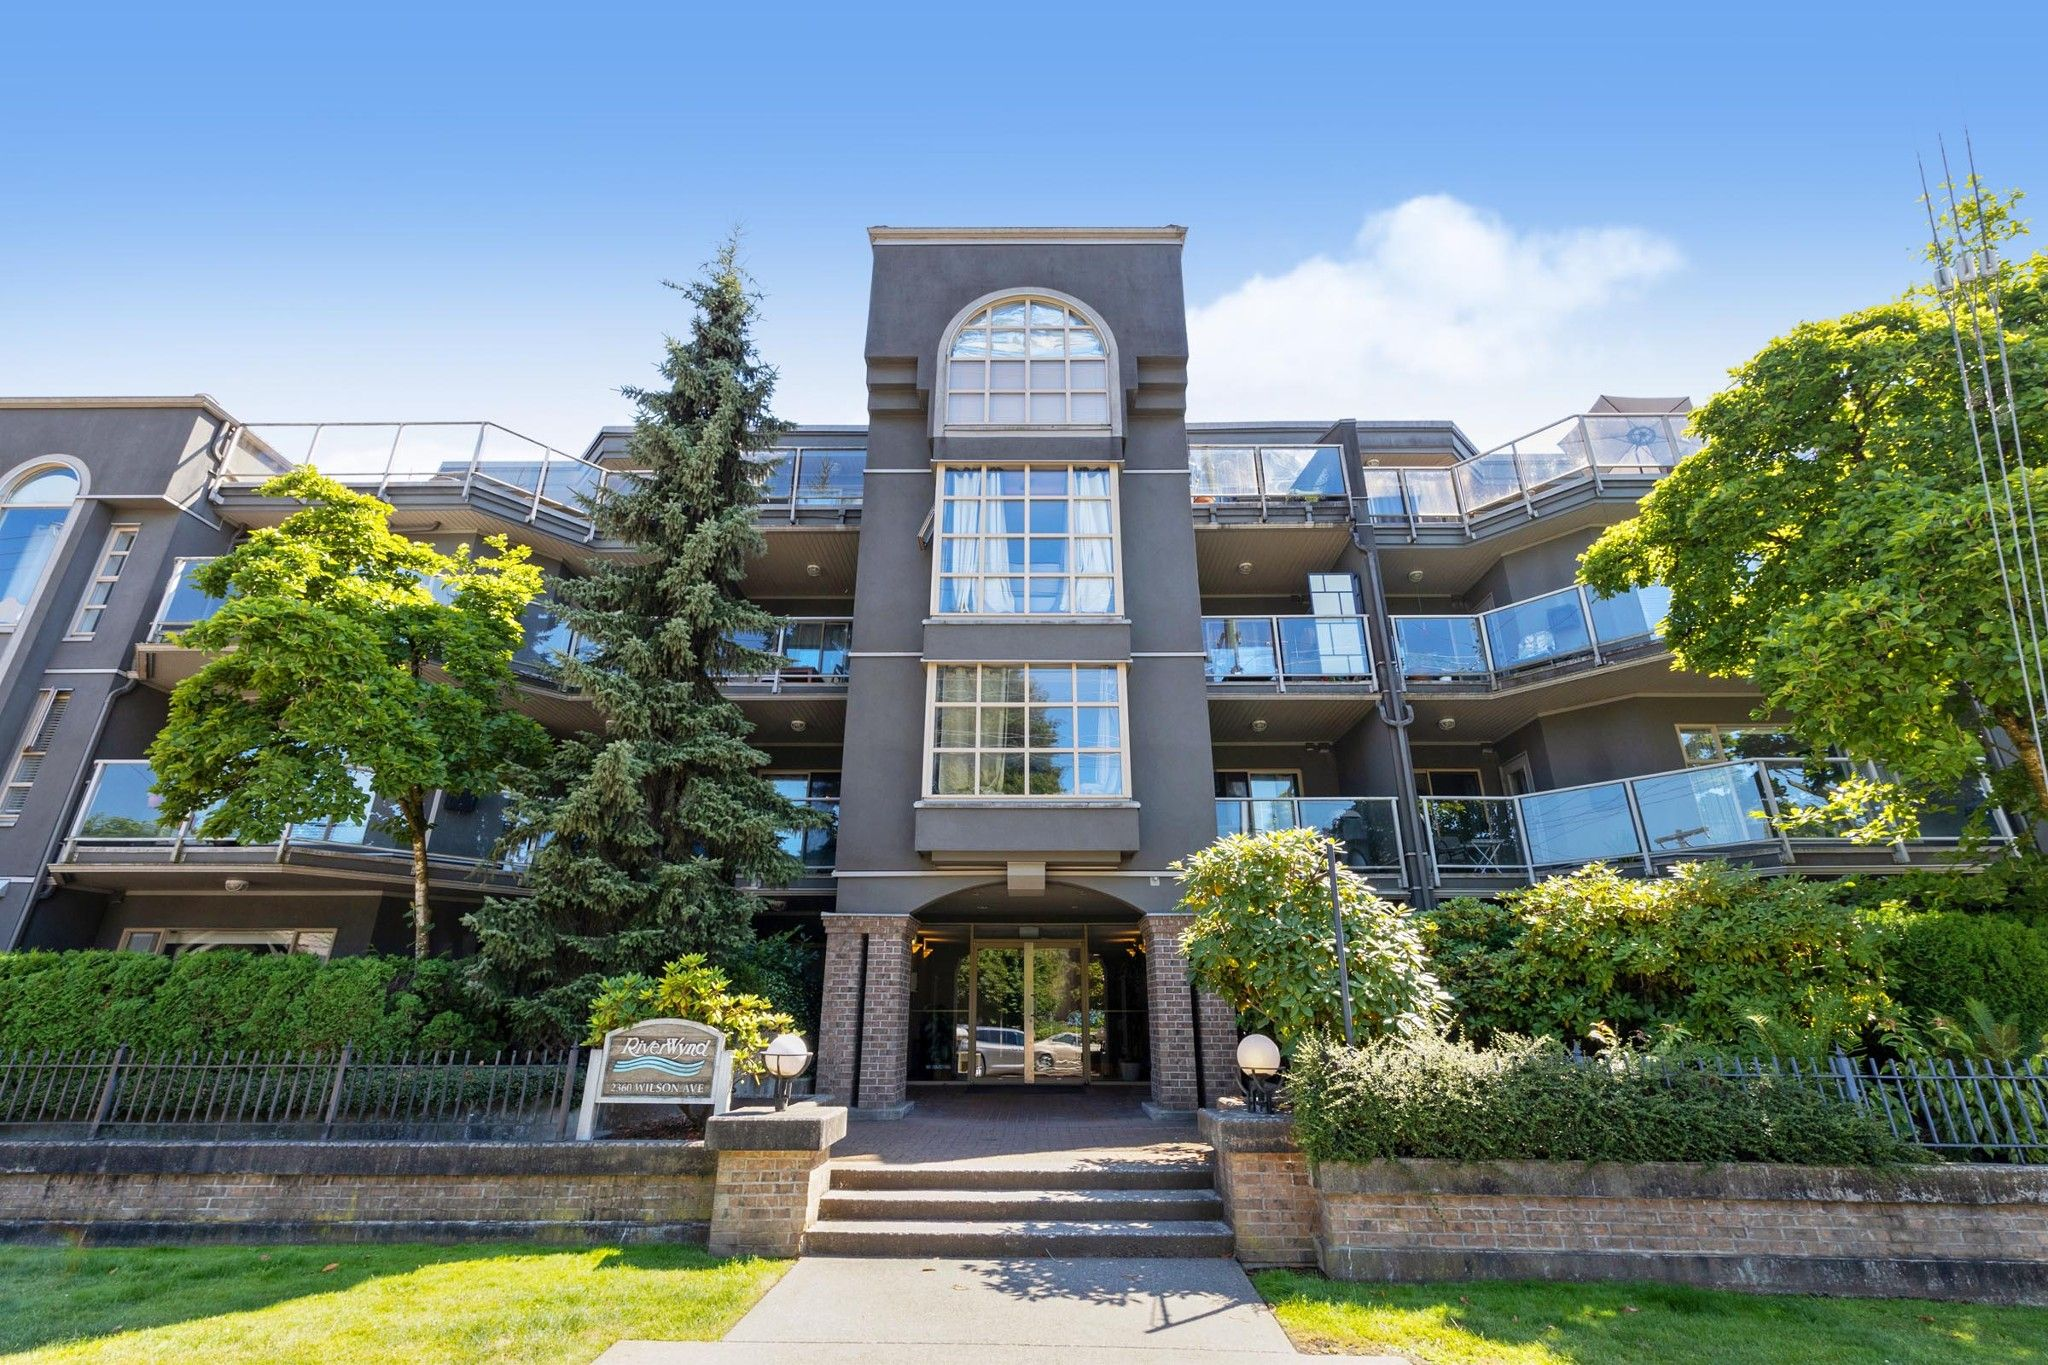 """Main Photo: 404 2360 WILSON Avenue in Port Coquitlam: Central Pt Coquitlam Condo for sale in """"RIVERWYND"""" : MLS®# R2602179"""